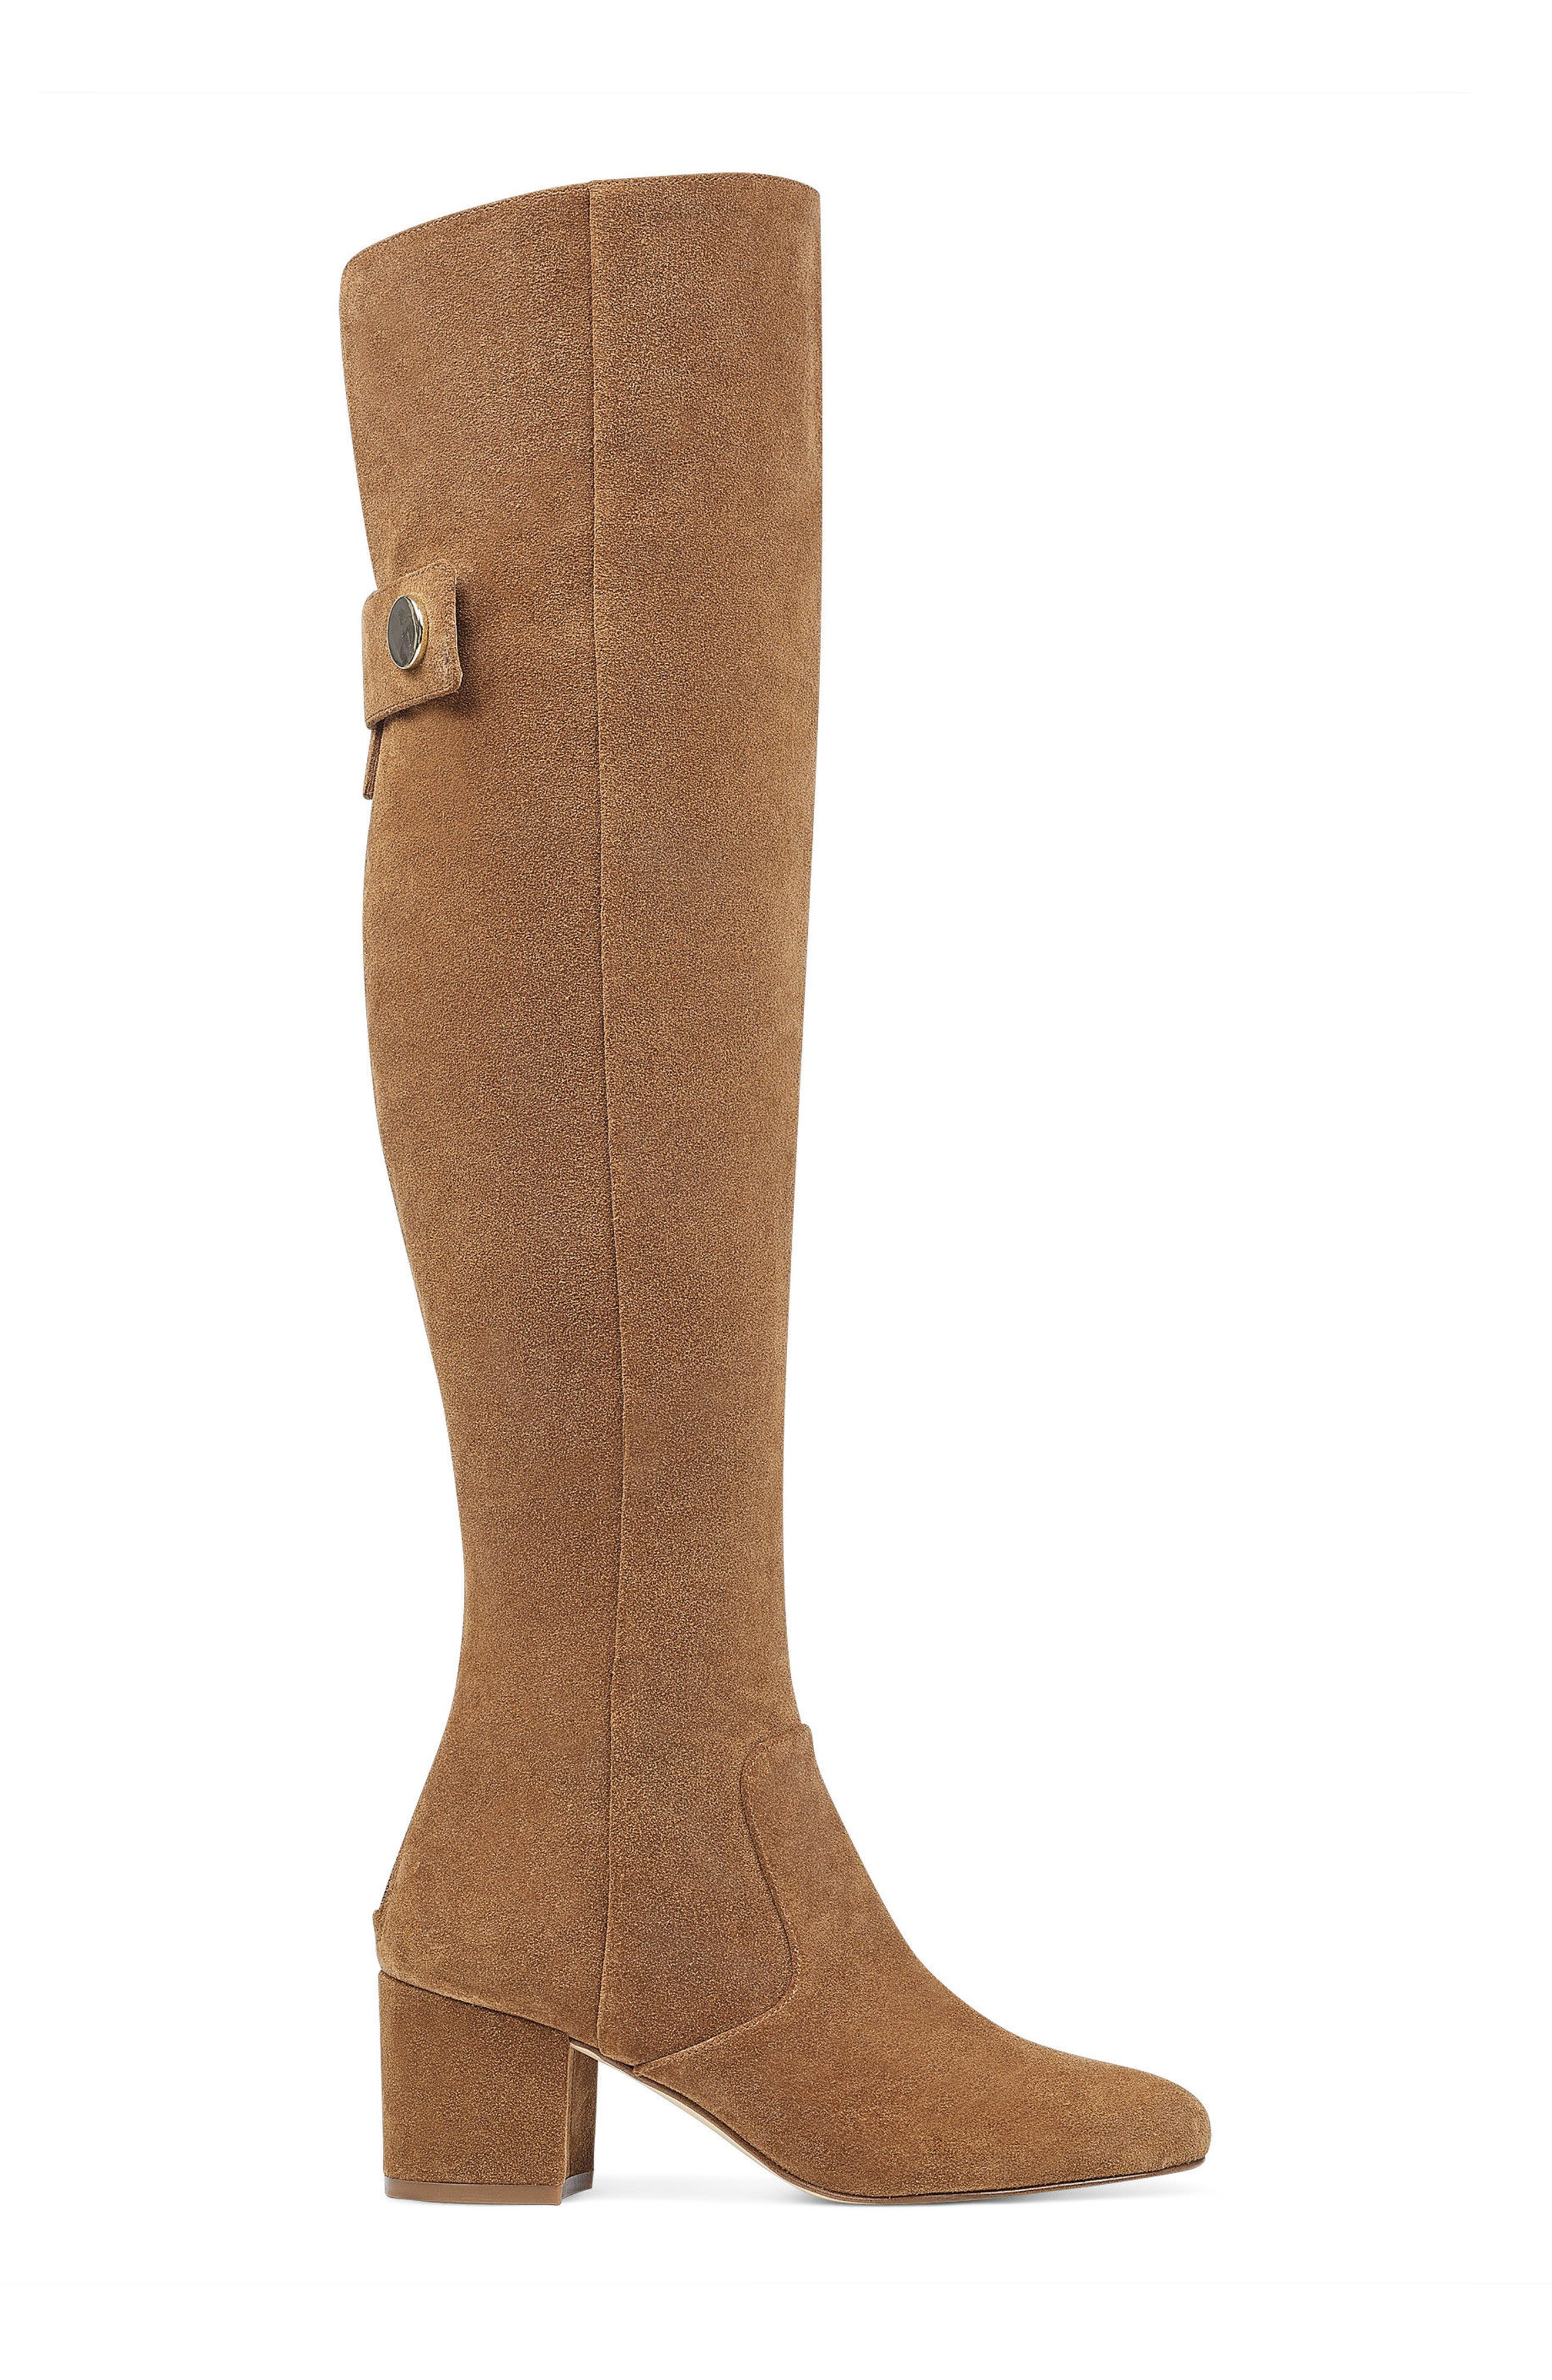 Queddy Over the Knee Boot,                             Alternate thumbnail 6, color,